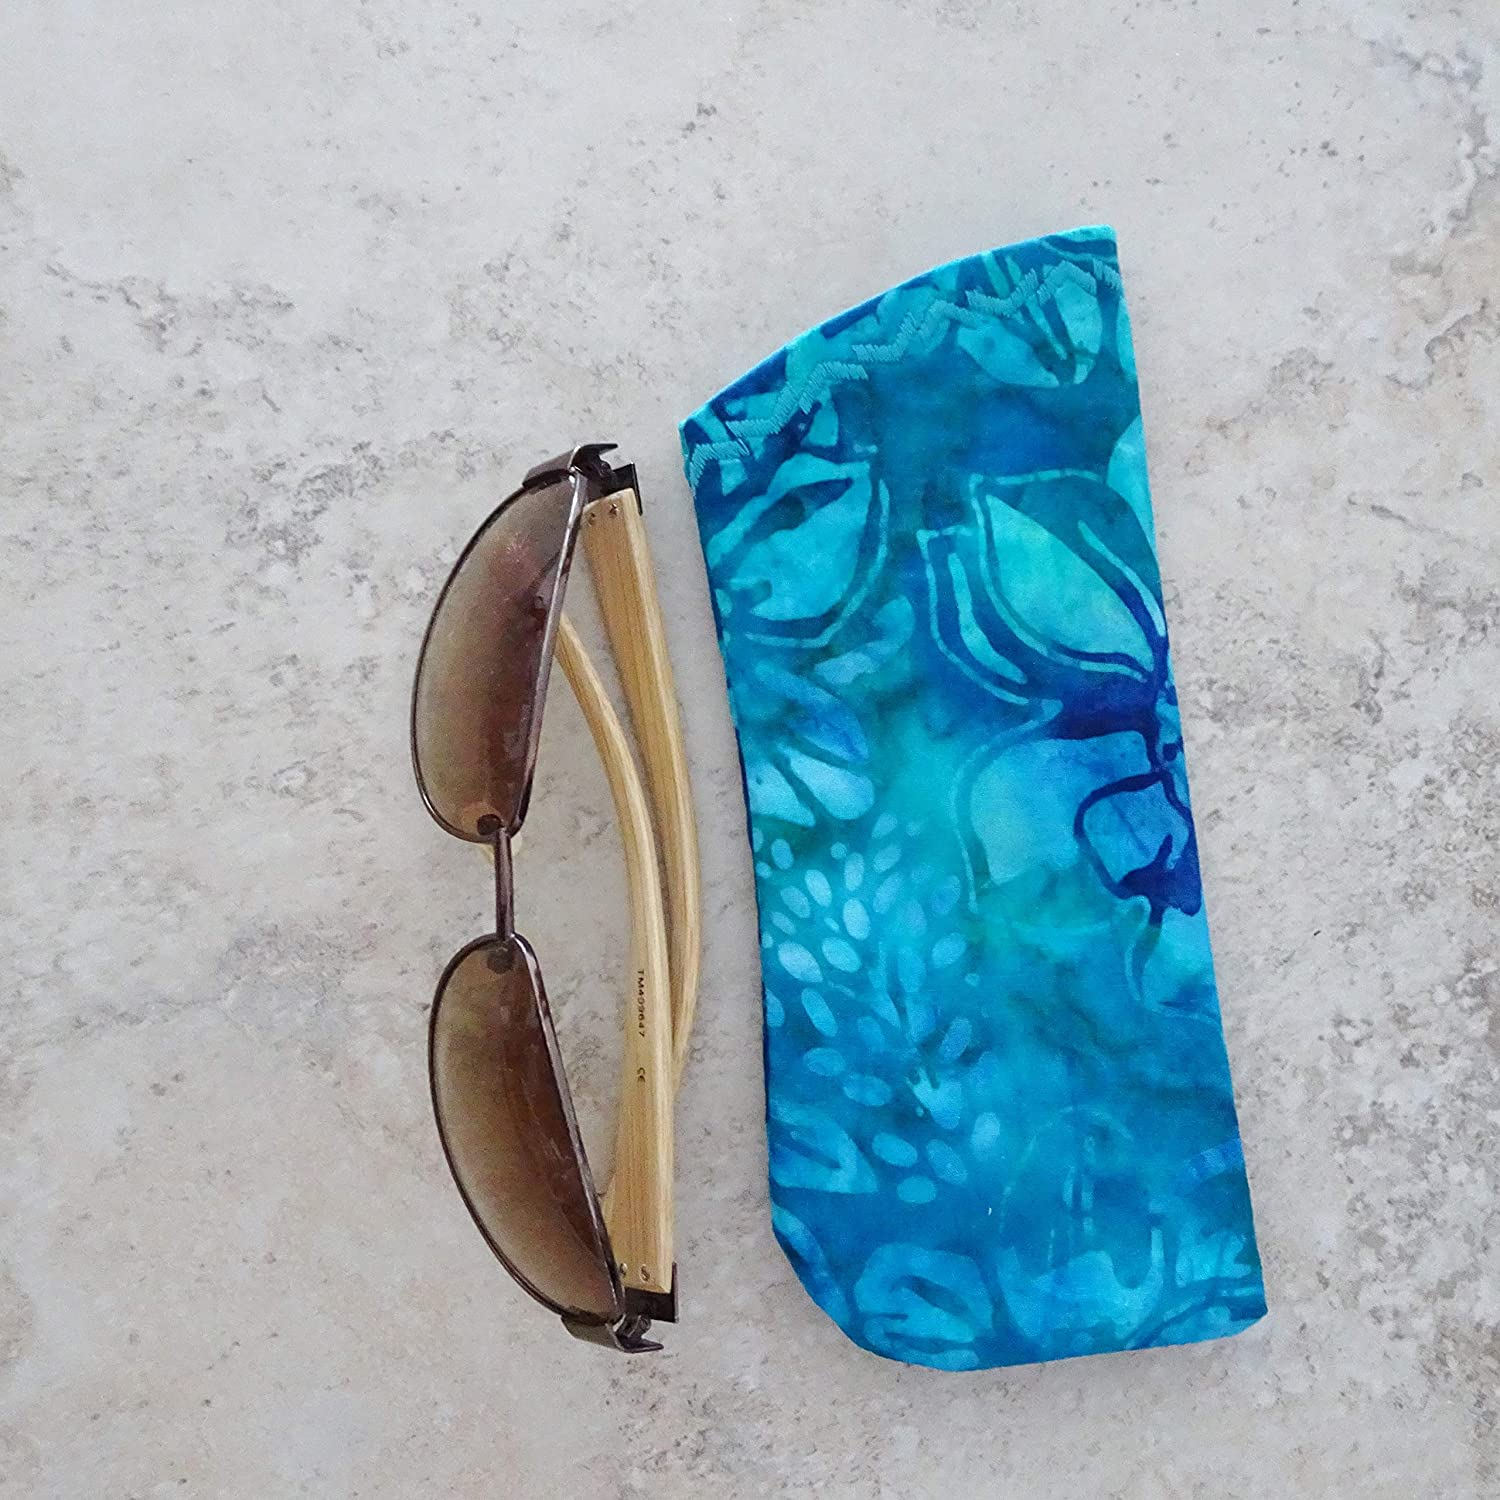 Handmade Products Cases Turquoise Batik Fabric Case for Glasses ...